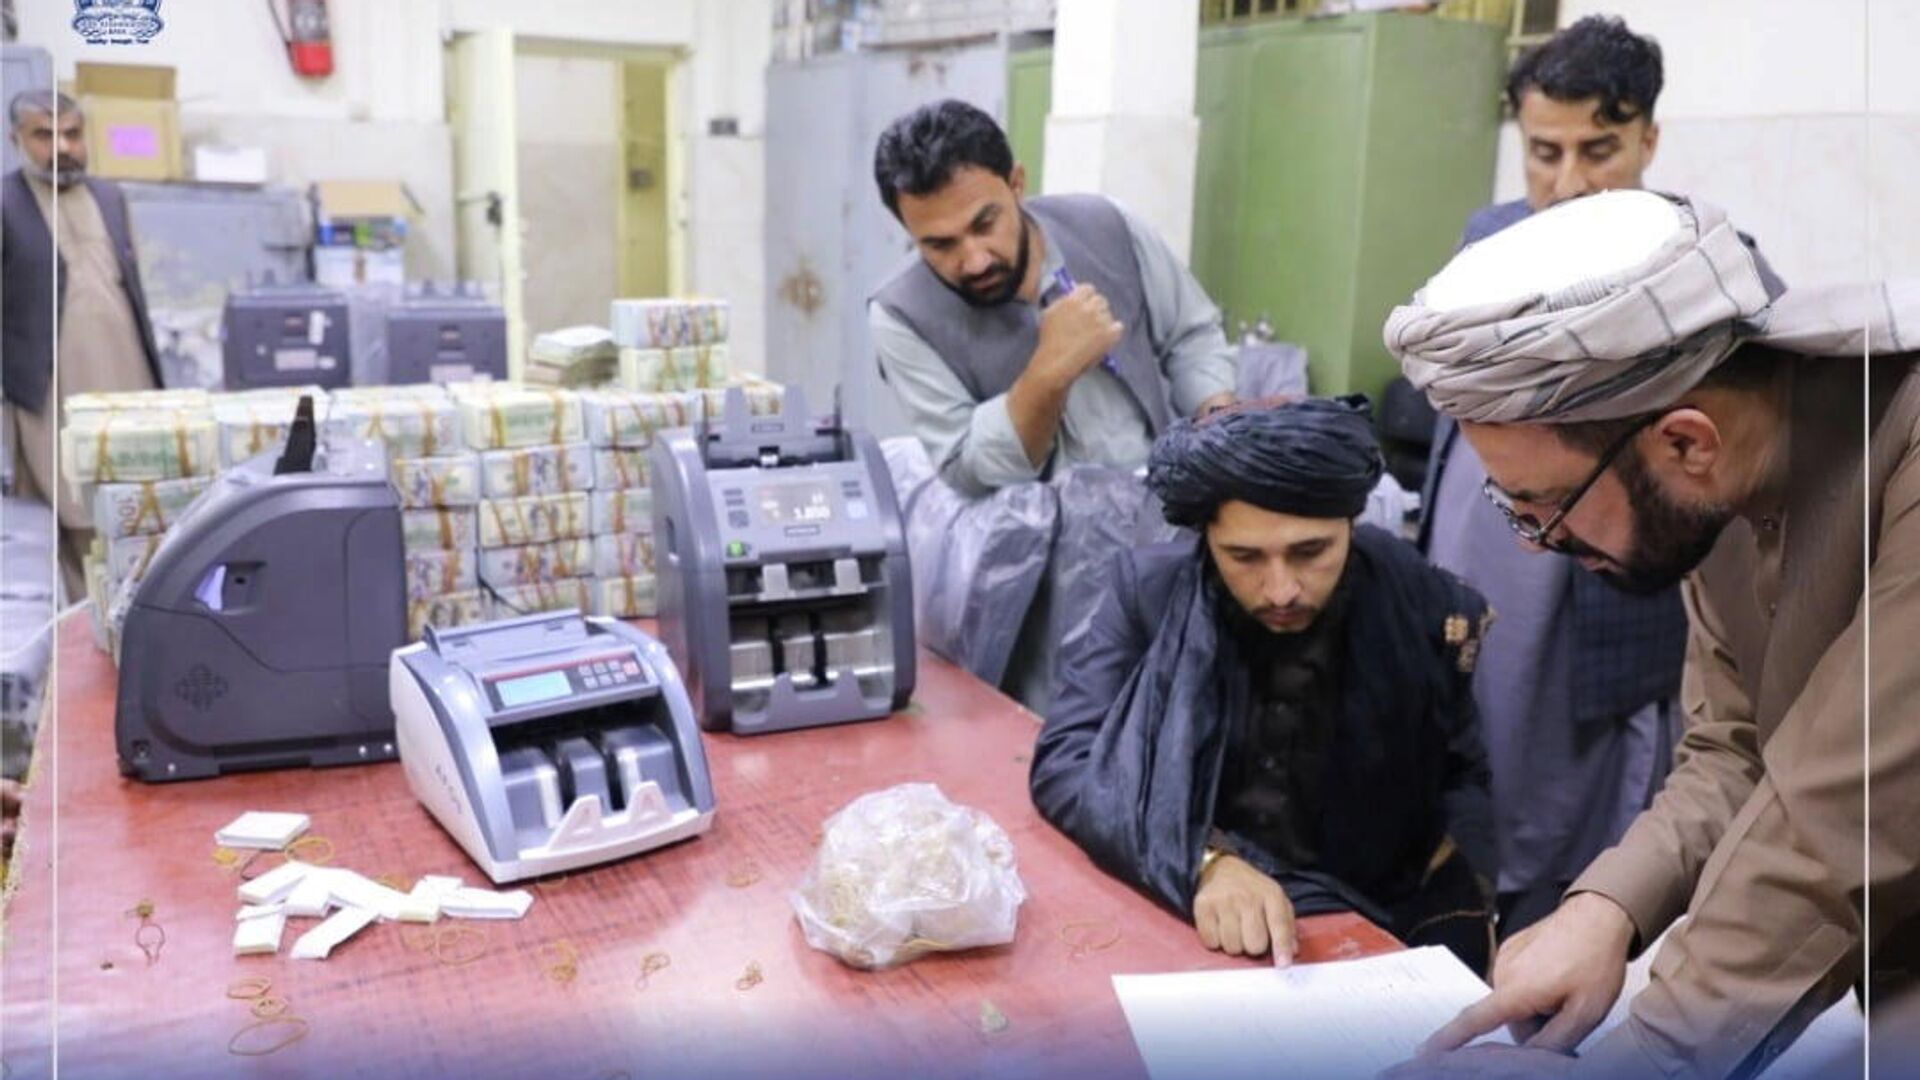 Men are pictured as Afghanistan's Taliban-controlled central bank seizes a large amount of money in cash and gold from former top government officials, including former vice president Amrullah Saleh, in Afghanistan, in this handout obtained by Reuters on September 15, 2021 - Sputnik International, 1920, 15.09.2021